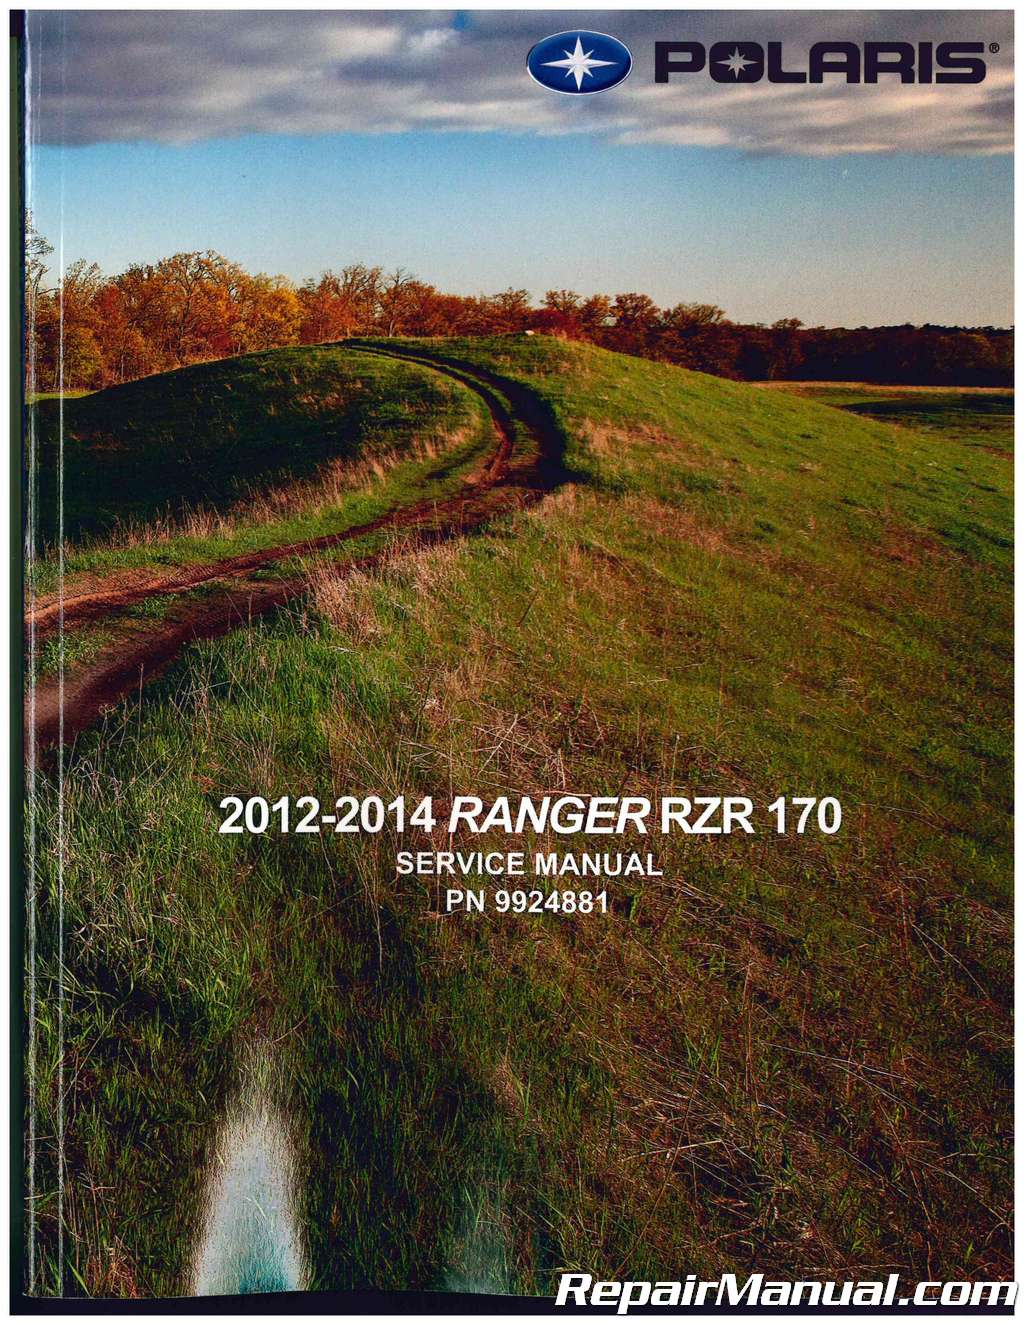 2014 Polaris Rzr 170 Service Manual Wiring Diagram 2012 Ranger Rh Repairmanual Com 2015 Owners 2013 Sxs